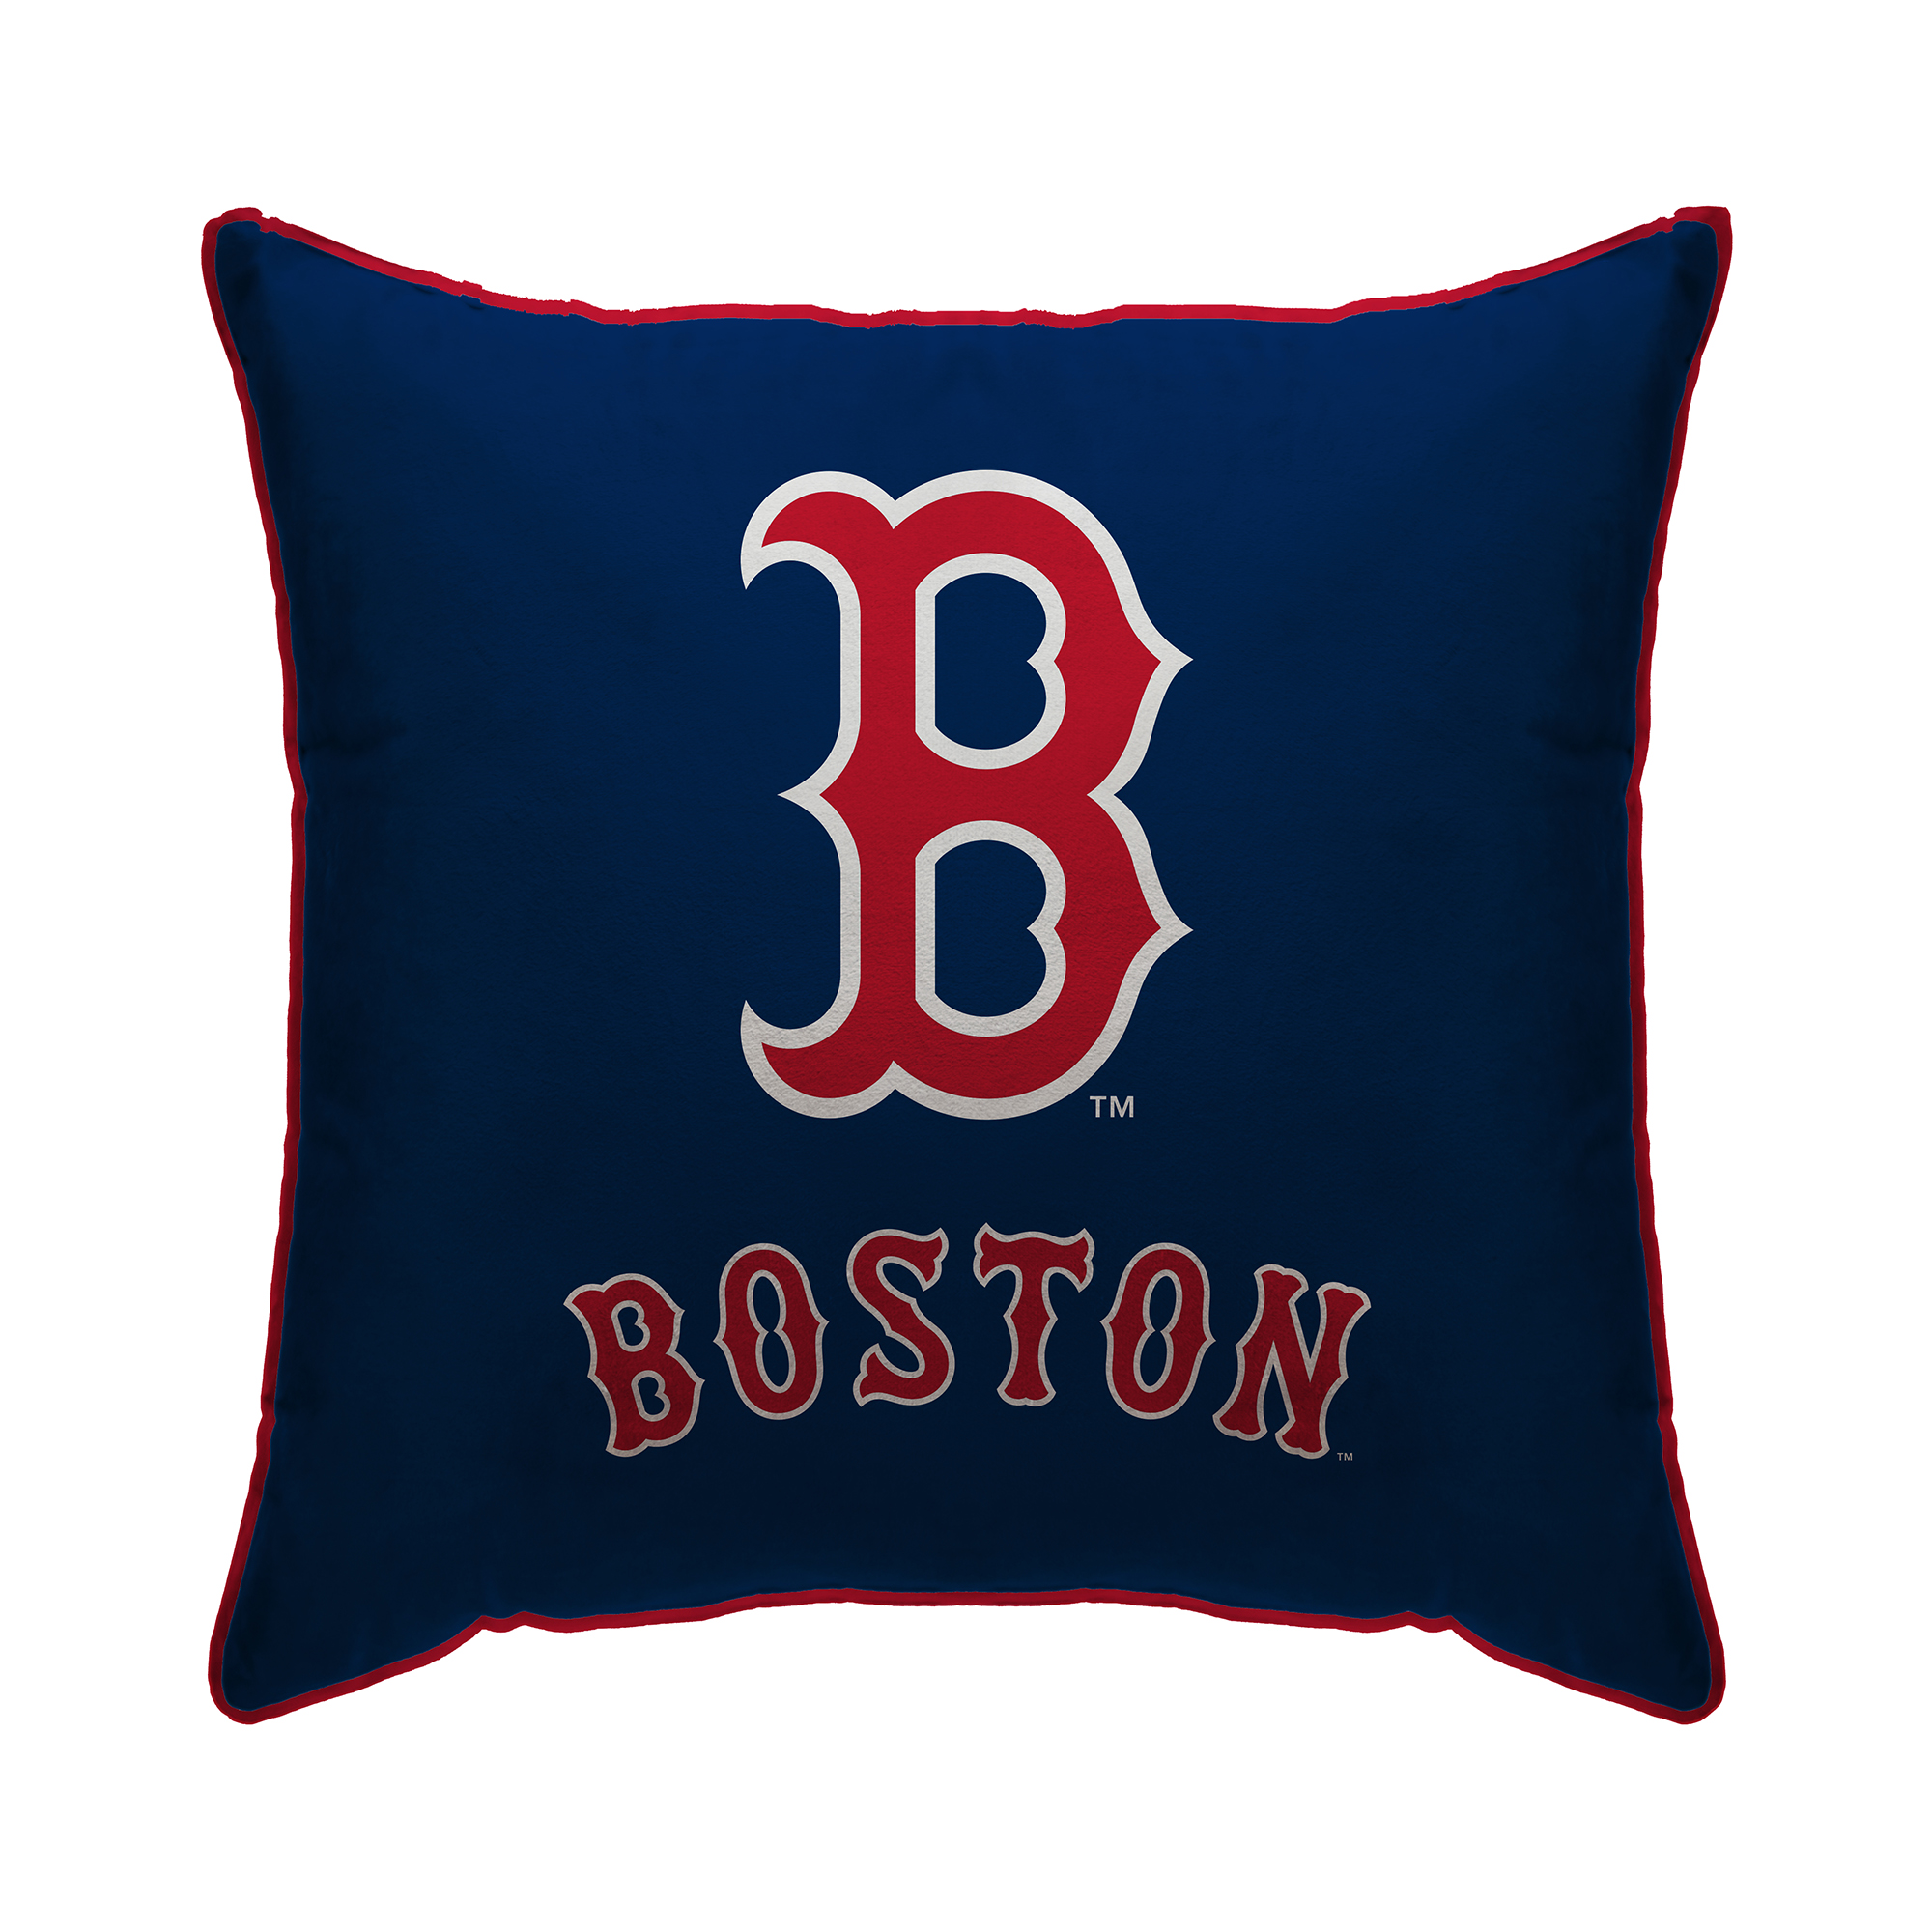 "Boston Red Sox 18"" x 18"" Plush Team Logo Decorative Throw Pillow - Blue - No Size"